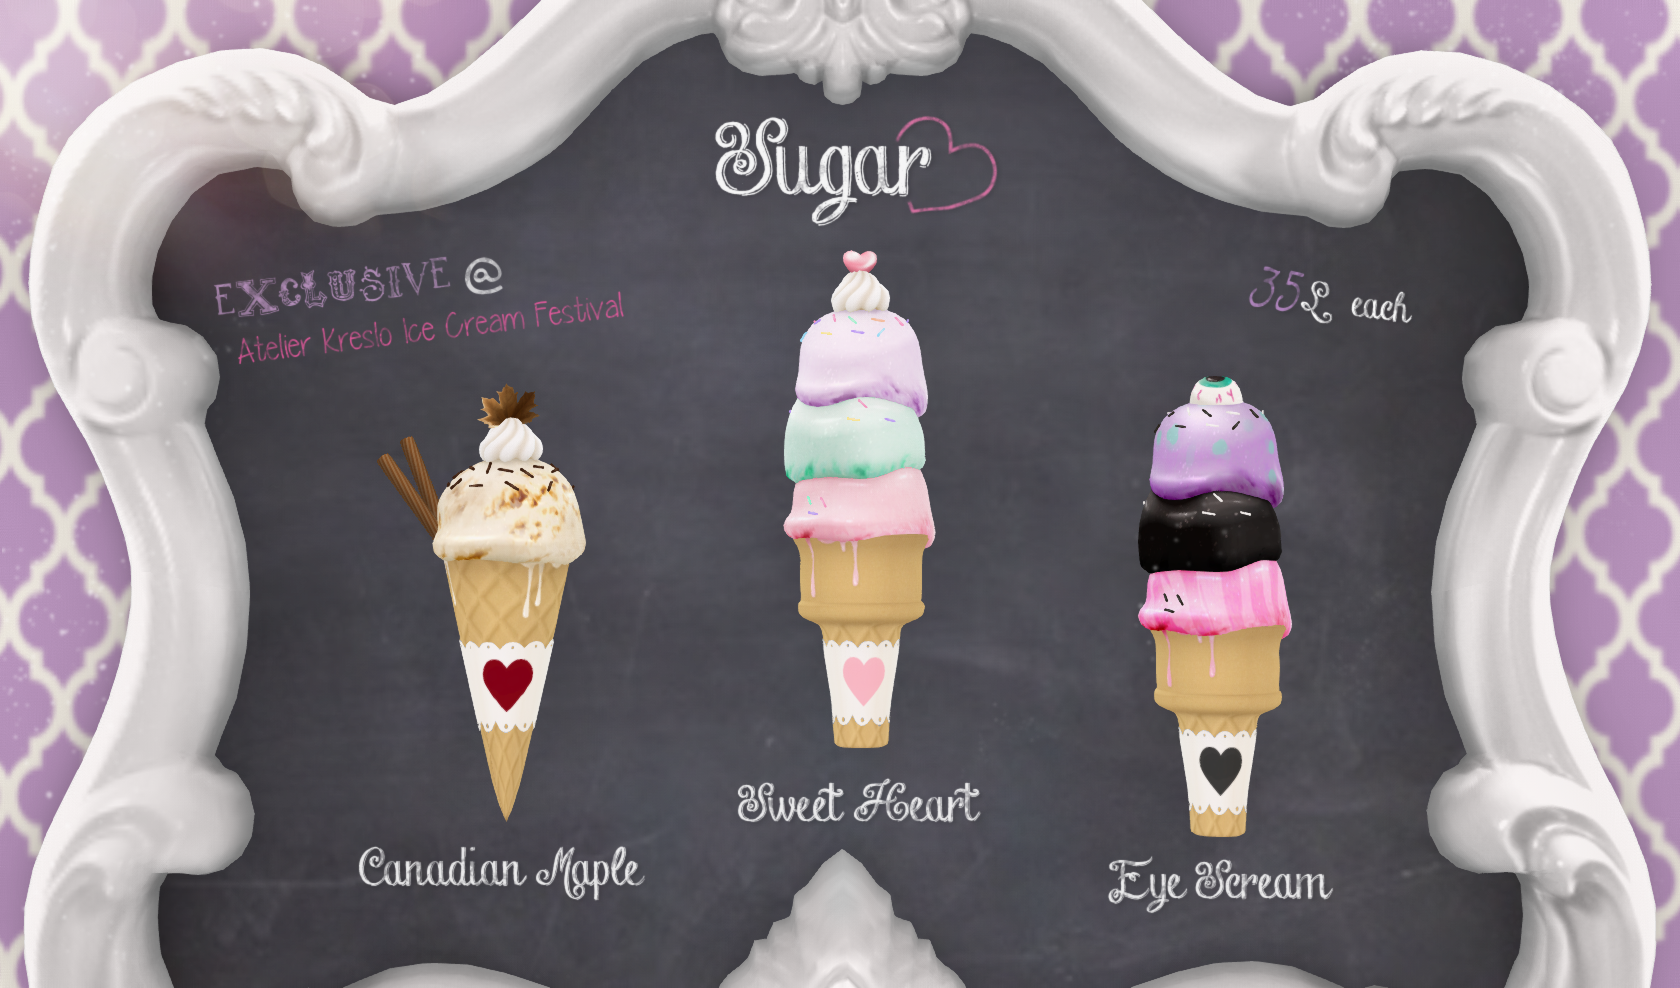 {Sugar Heart} @ Atelier Kreslo Ice Cream Festival